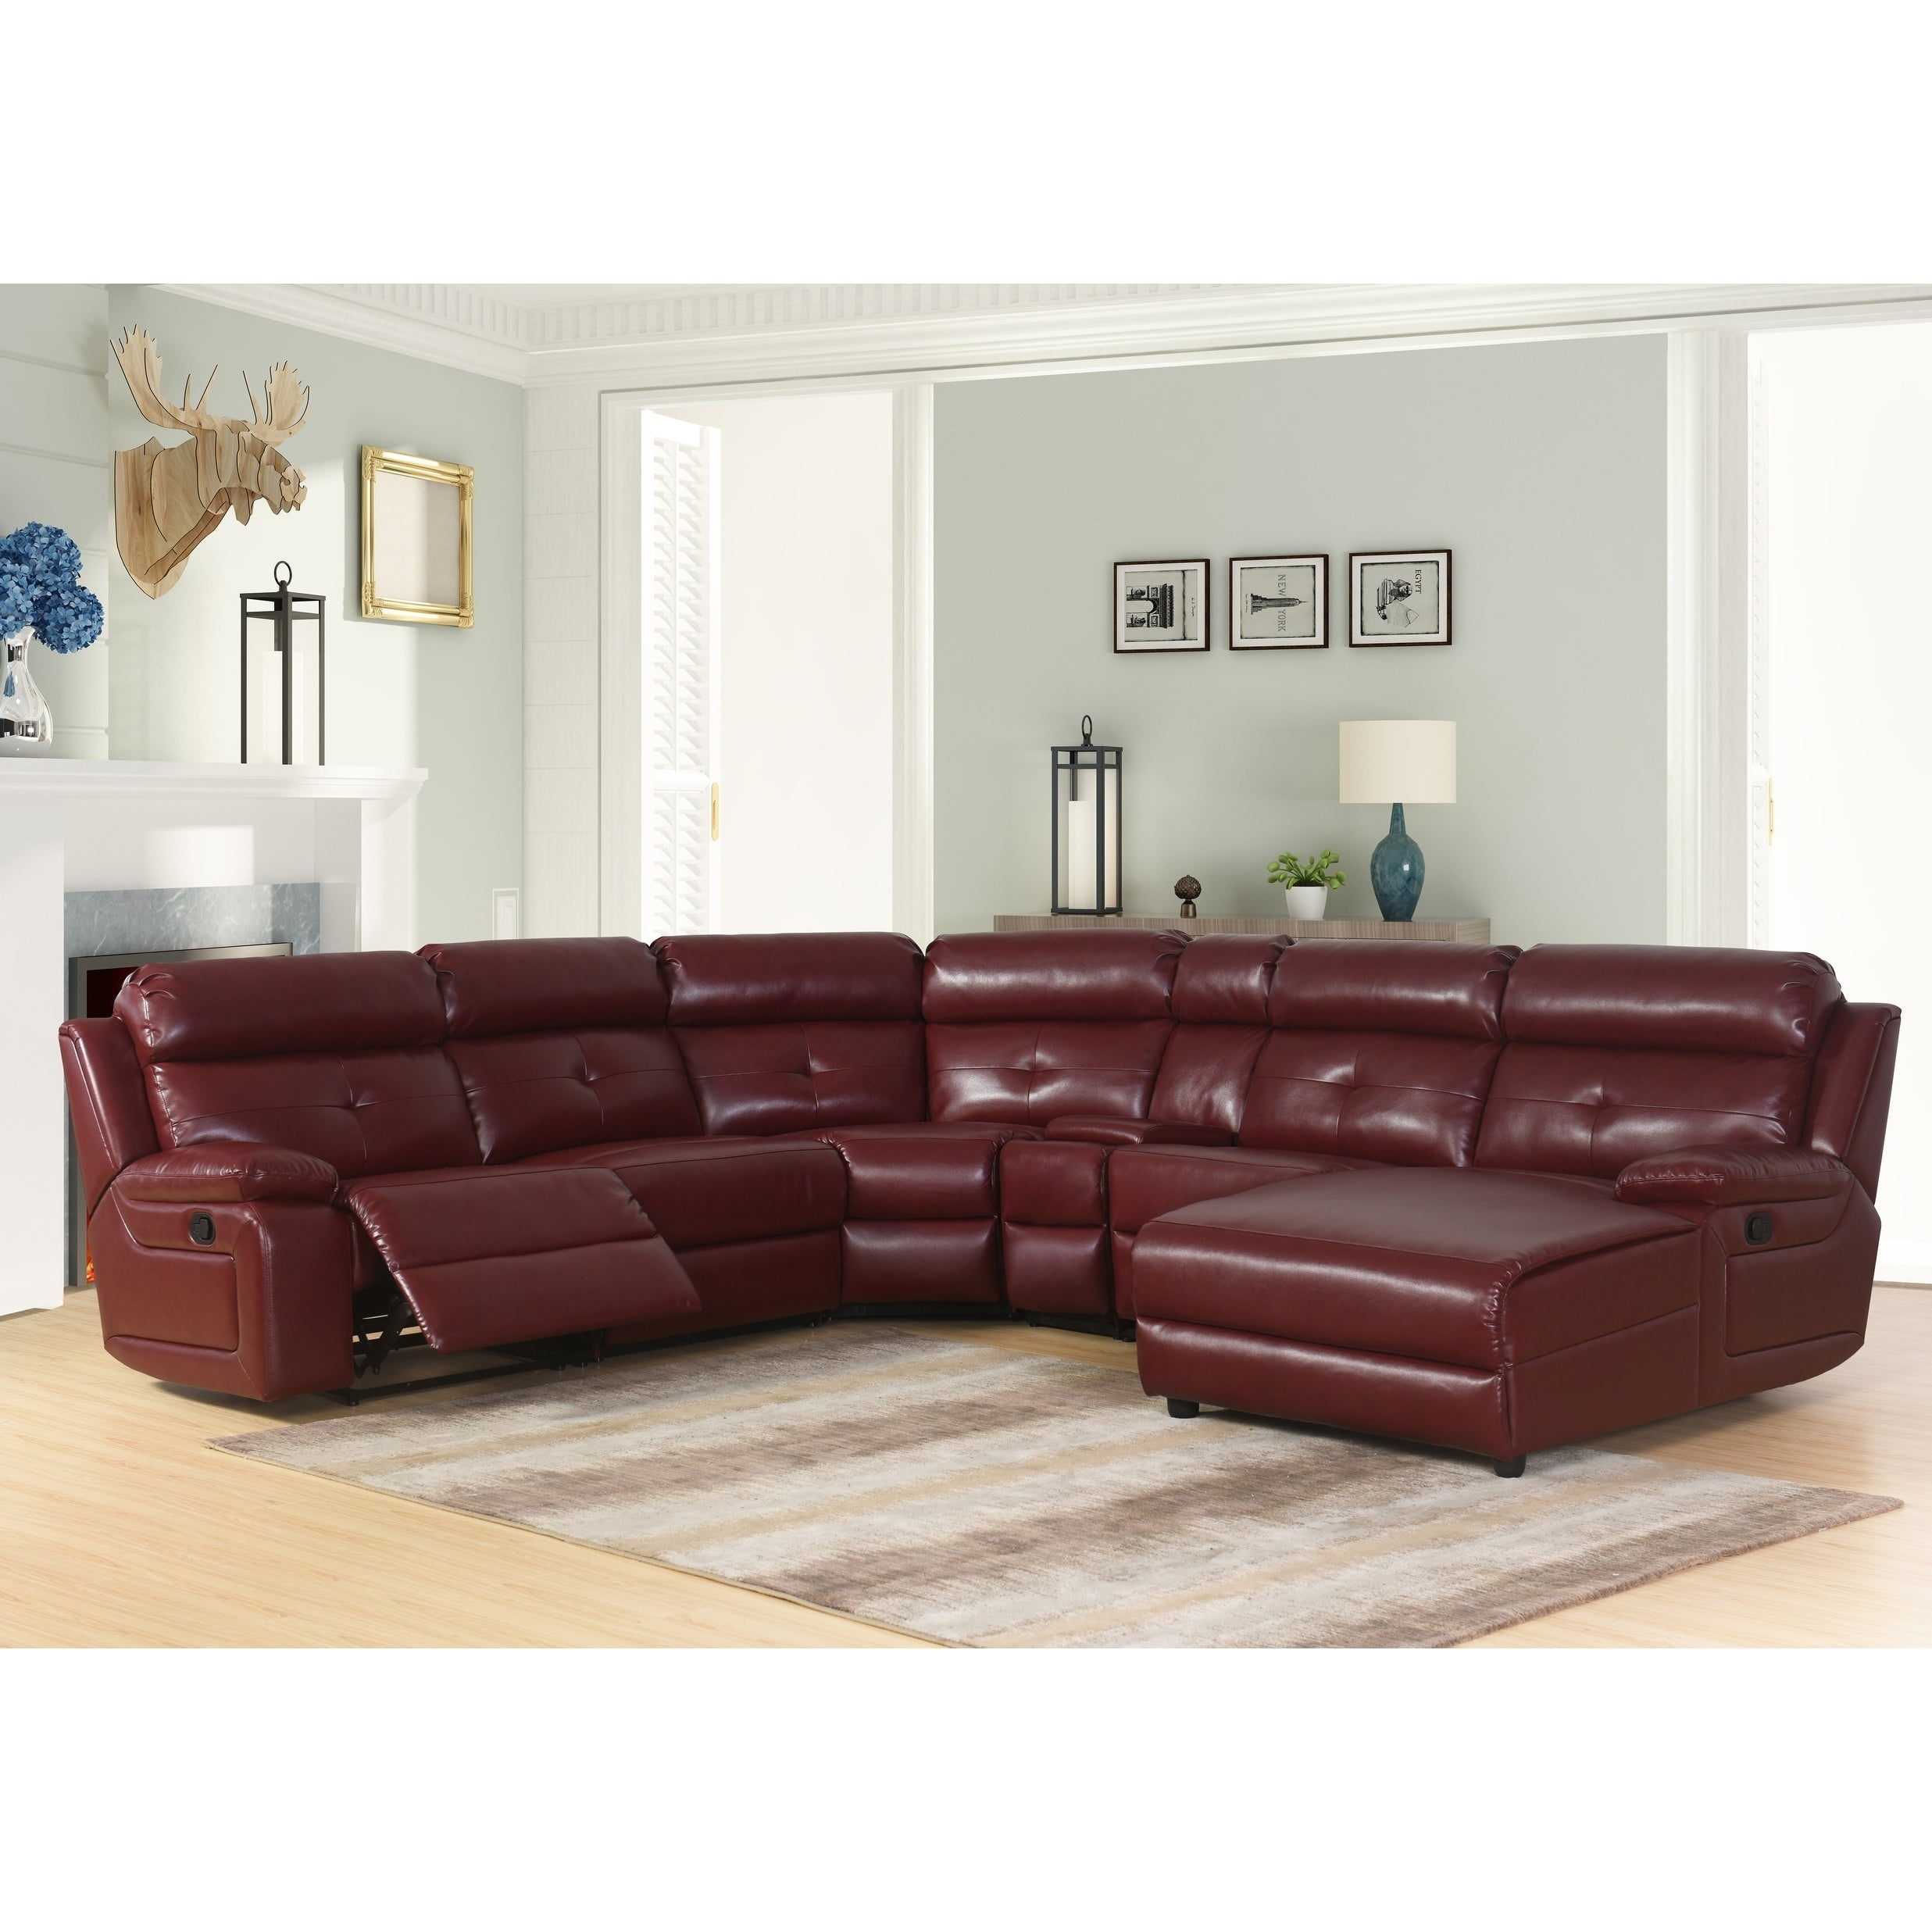 Abbyson Stevens 6 Piece Red Bonded Leather Reclining Sectional Ebay